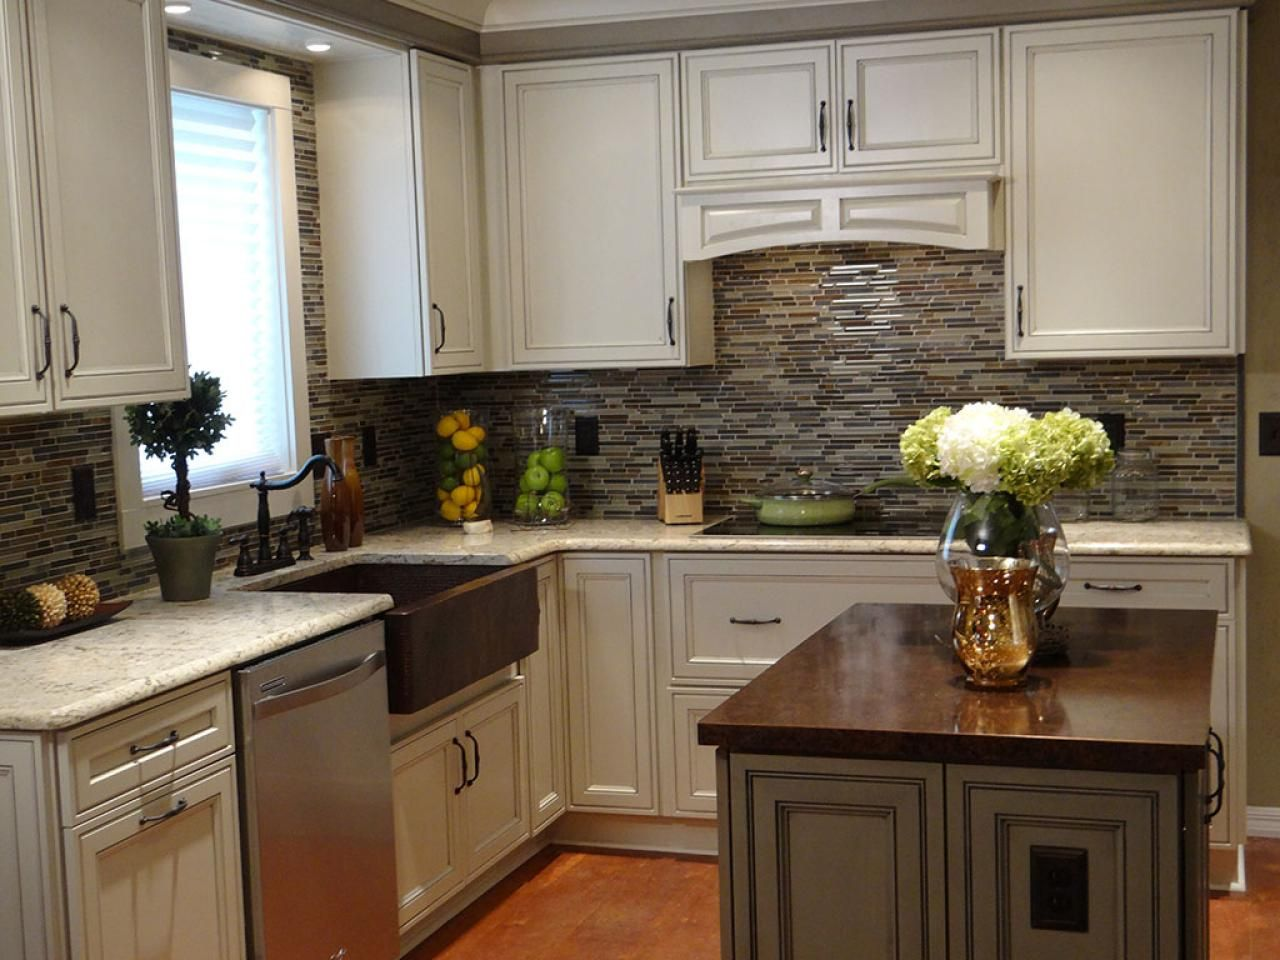 Kitchen Remodel Designer Magnificent 20 Small Kitchen Makeovershgtv Hosts  Small Kitchen Makeovers . Design Ideas